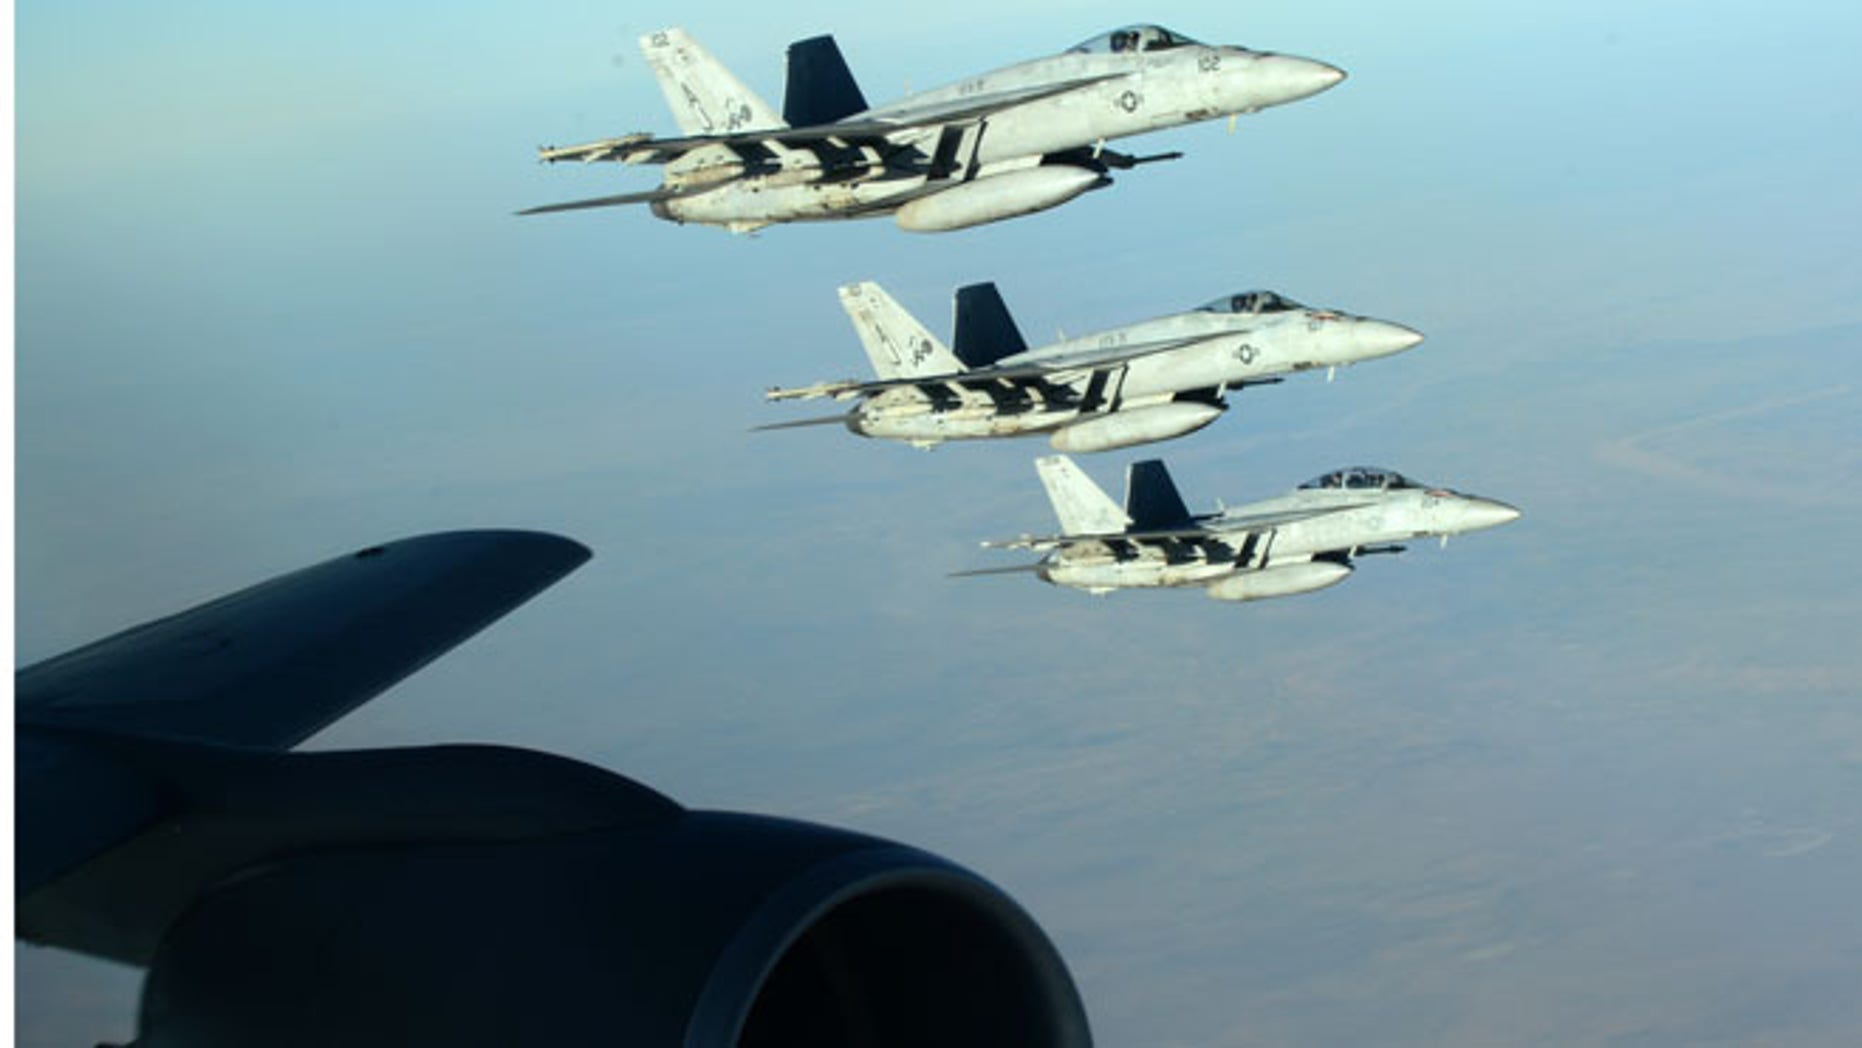 Sept. 23, 2014: In this photo released by the U.S. Air Force, a formation of U.S. Navy F-18E Super Hornets leaves after receiving fuel from a KC-135 Stratotanker over northern Iraq as part of U.S. led coalition airstrikes on the Islamic State group and other targets in Syria. (AP)